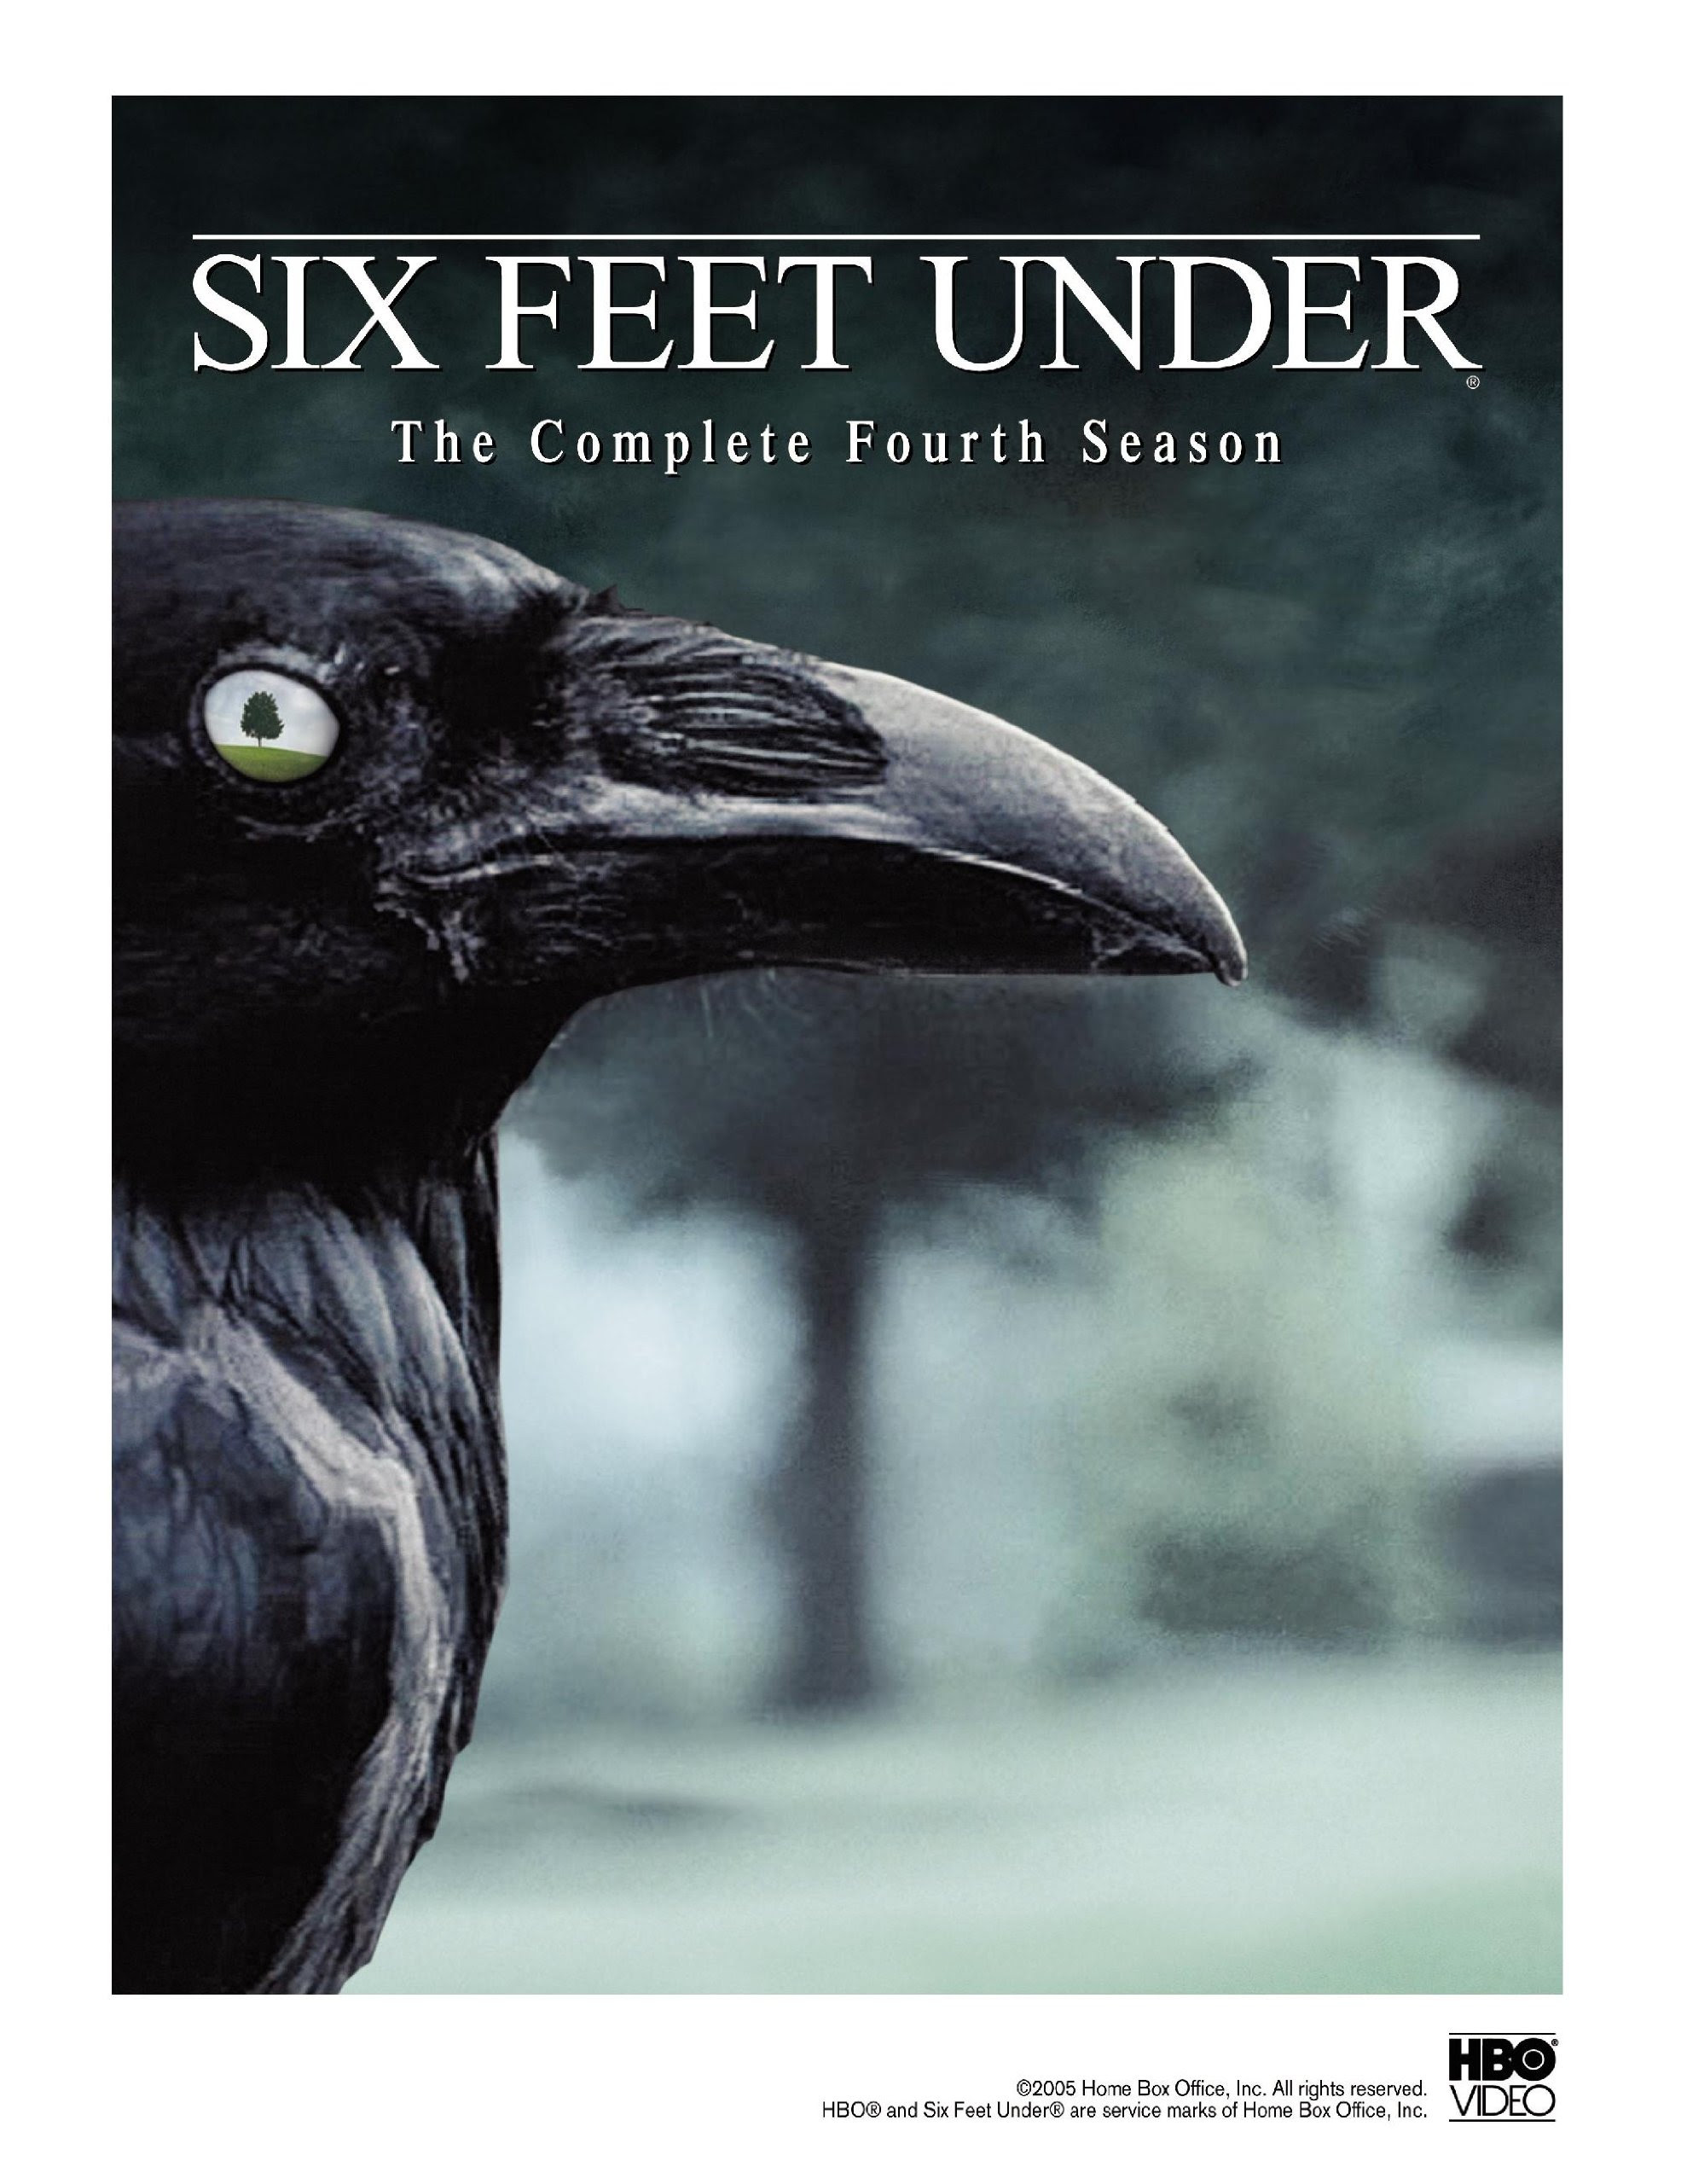 http://www.dvdsreleasedates.com/covers/six-feet-under-the-complete-fourth-season-dvd-cover-20.jpg